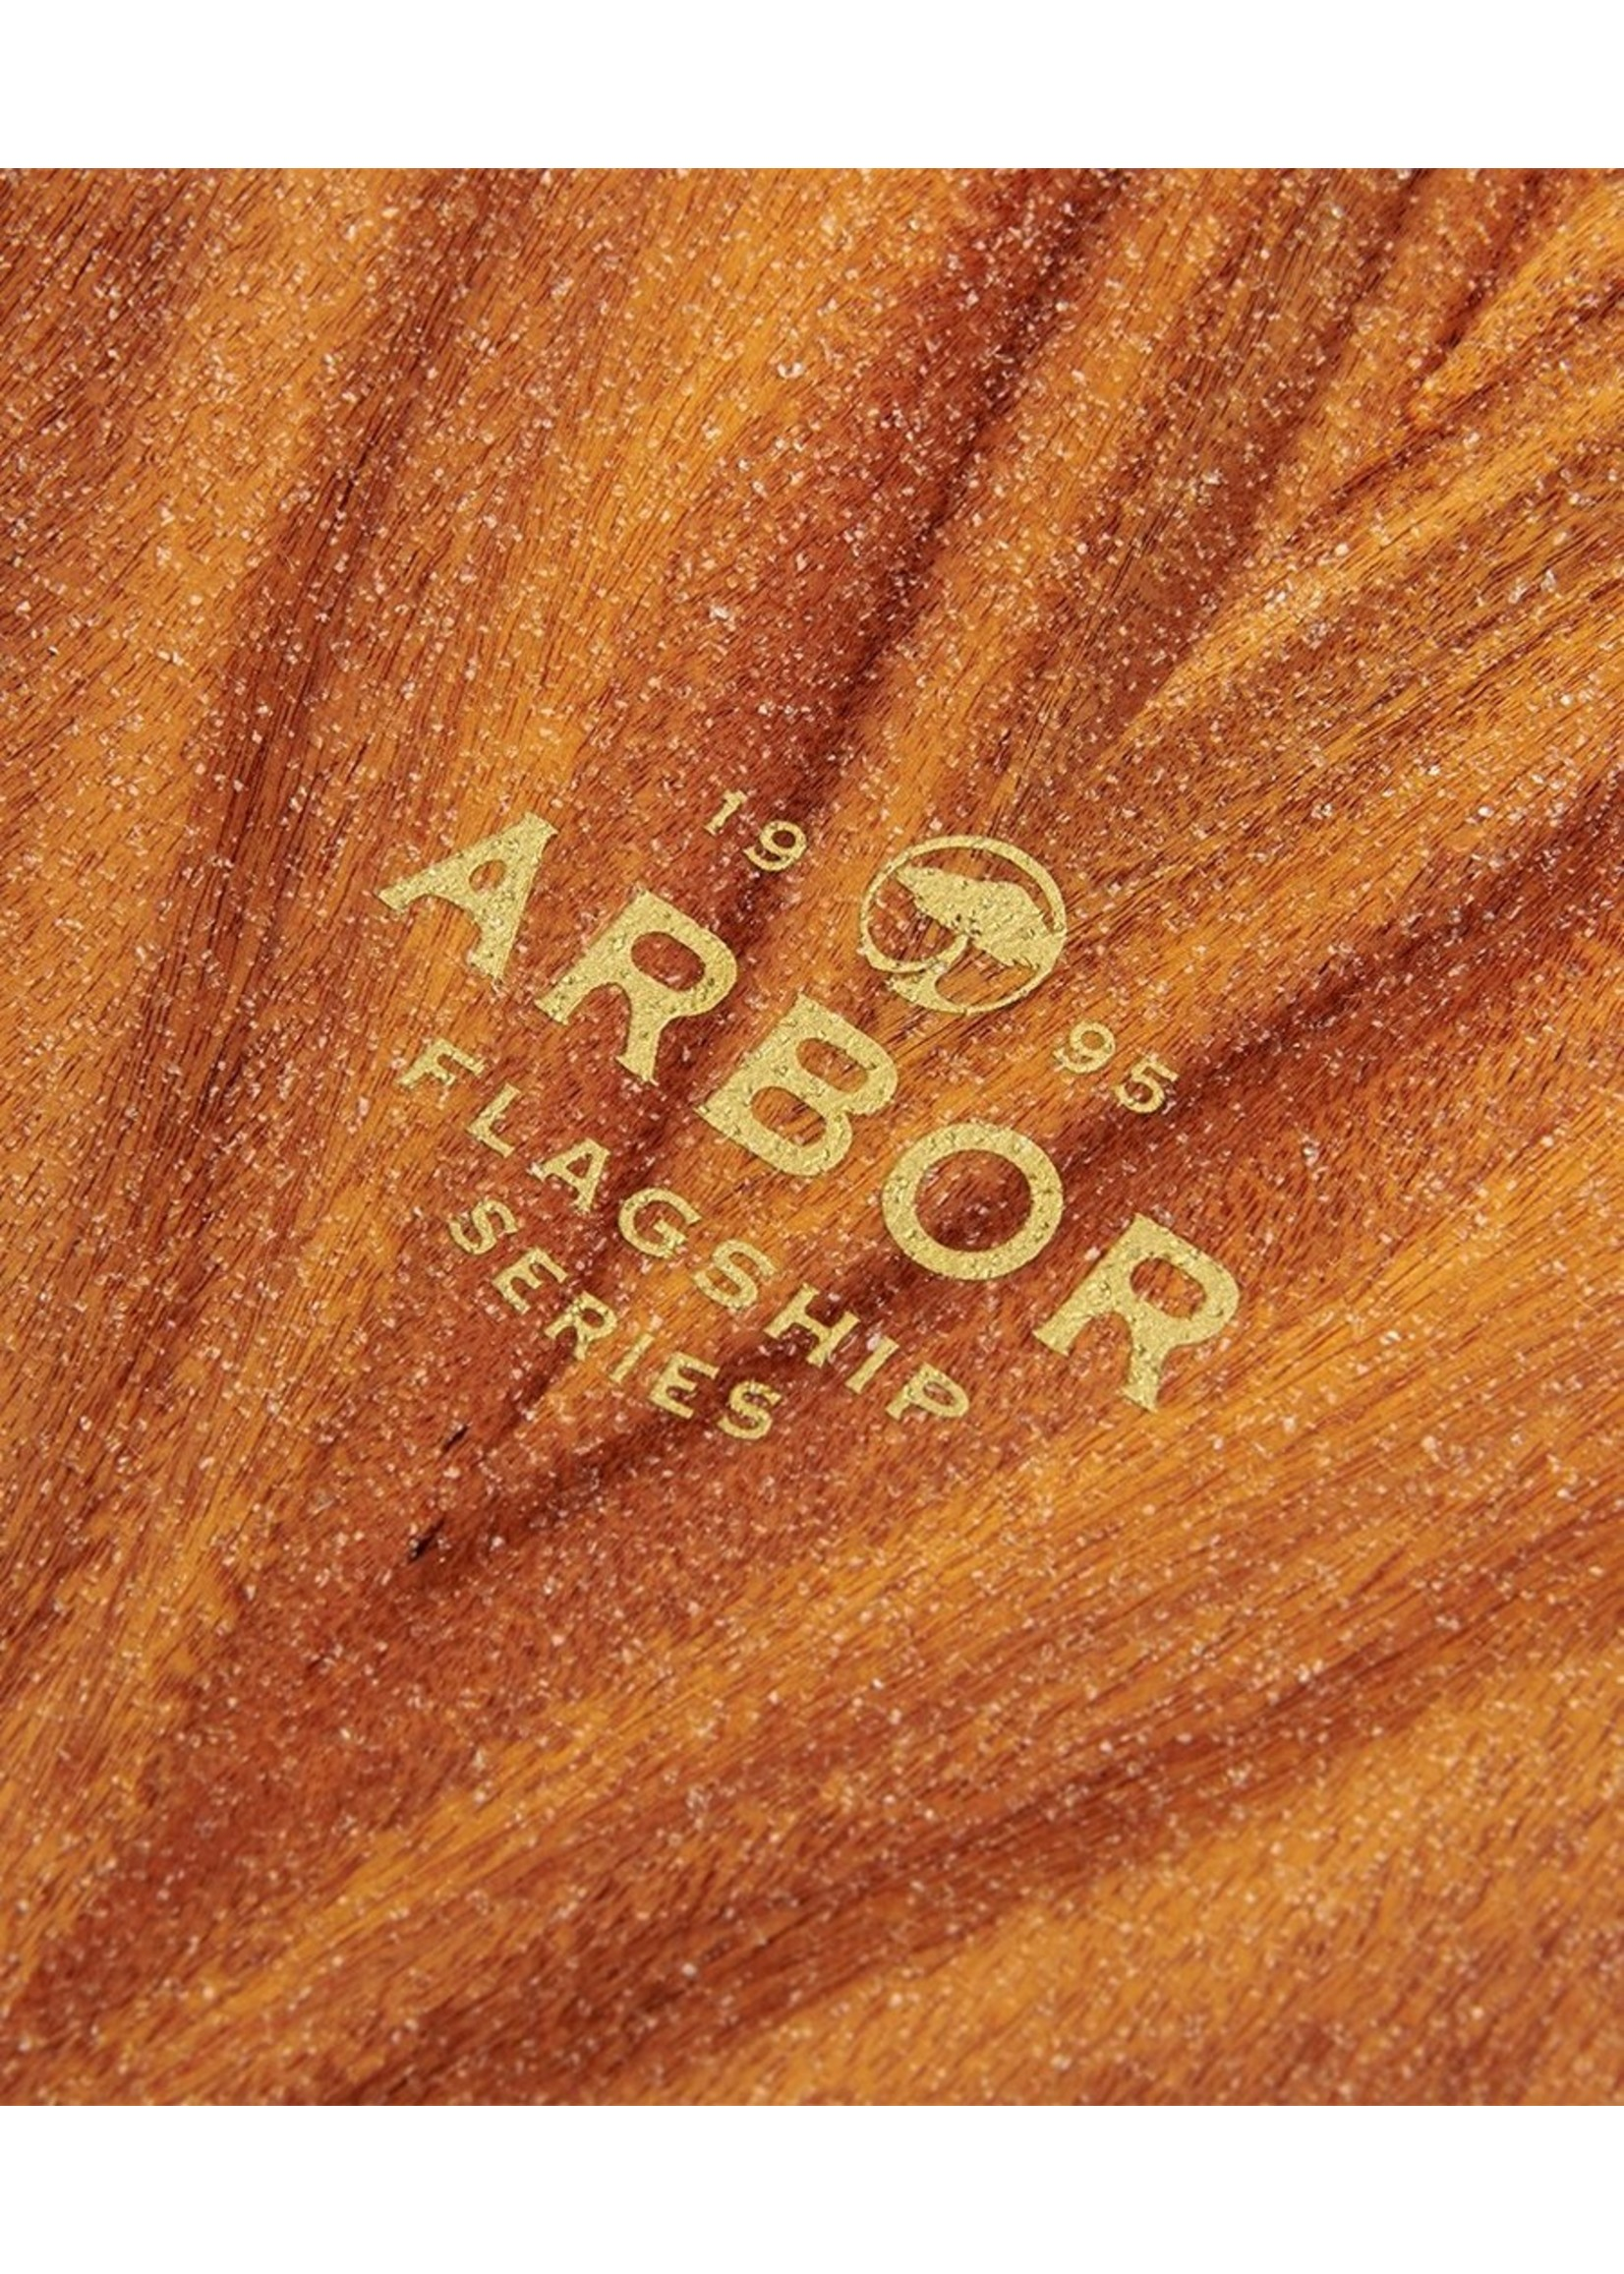 Arbor FLAGSHIP 40in